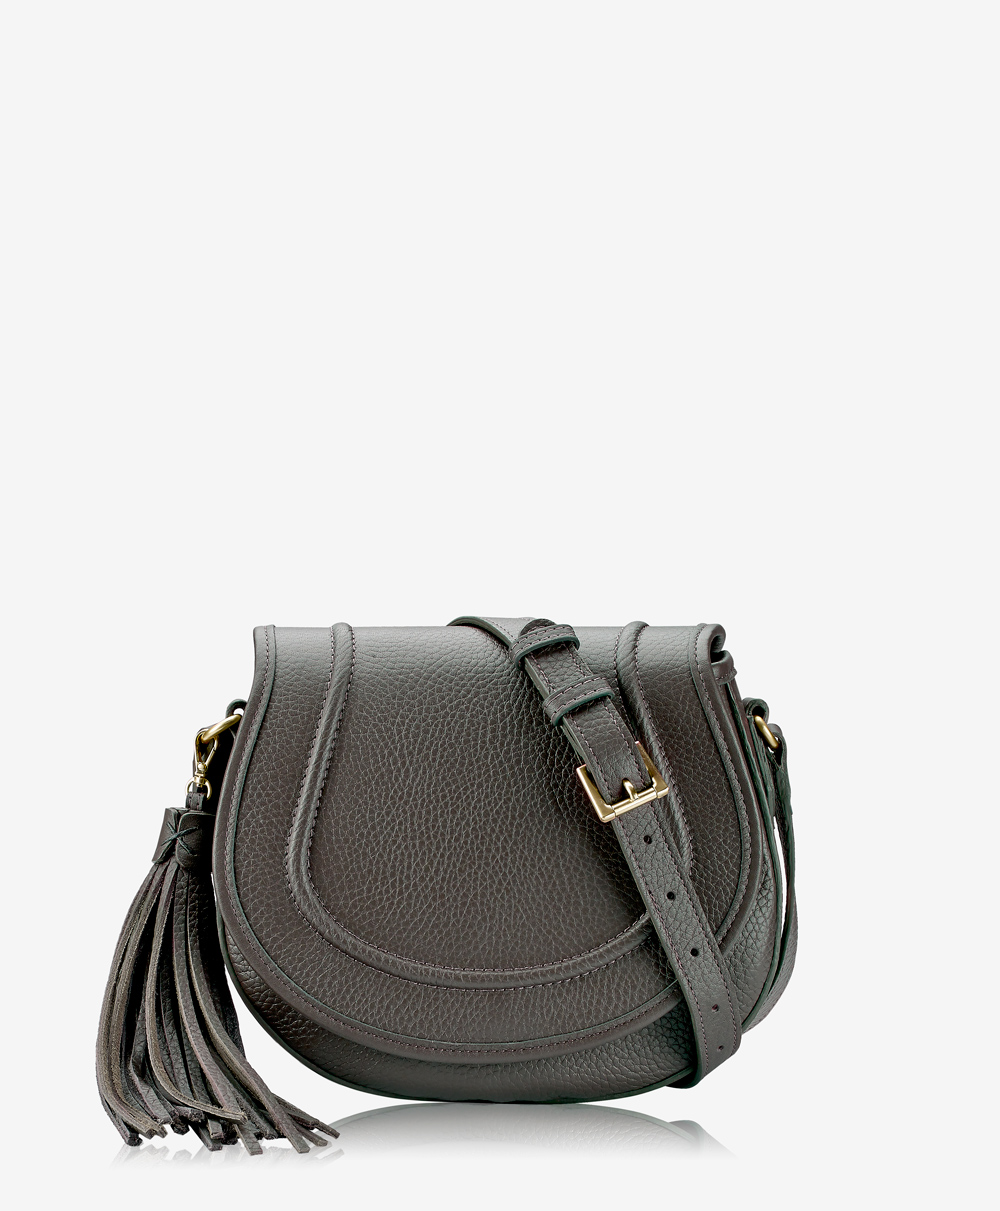 Jenni Saddle Bag Anthracite Pebble Grain JNI-TIM-ANT